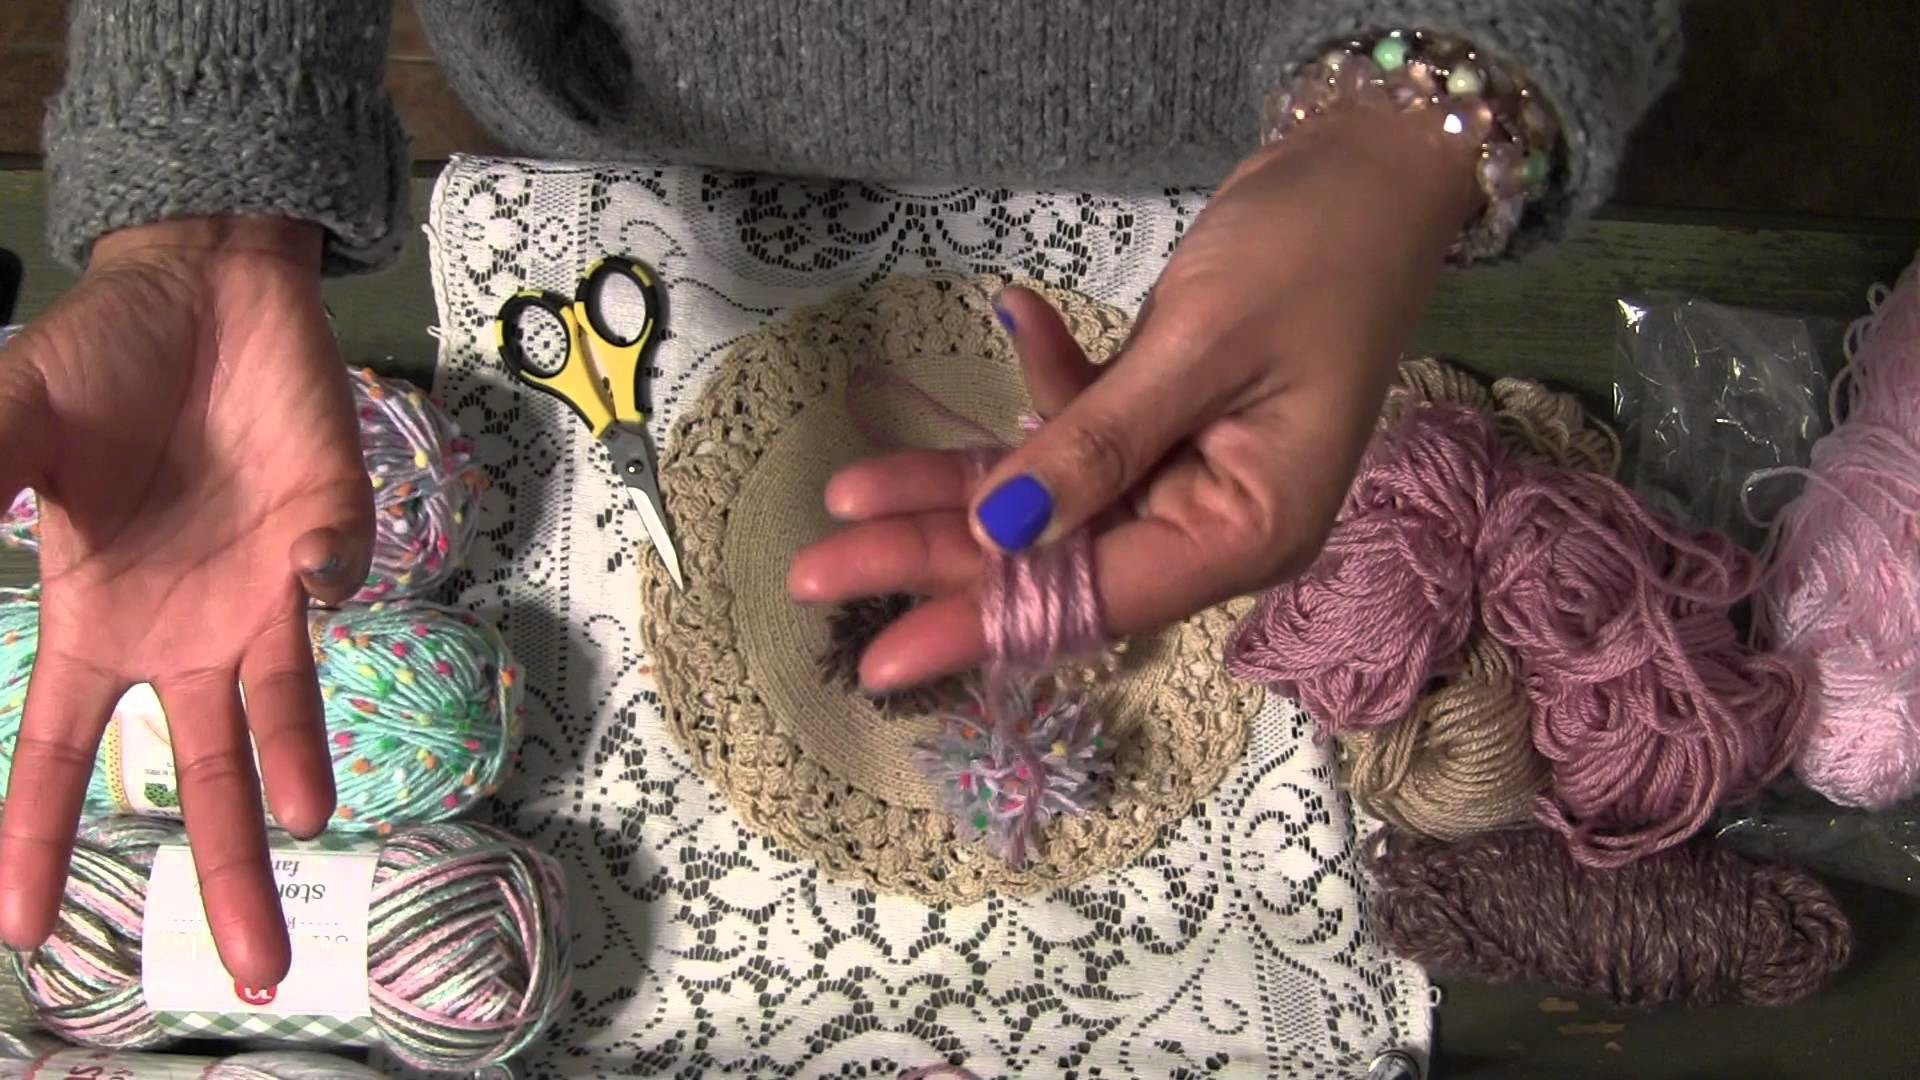 How To : Simple DIY Yarn Pom Poms | YennyStorytale